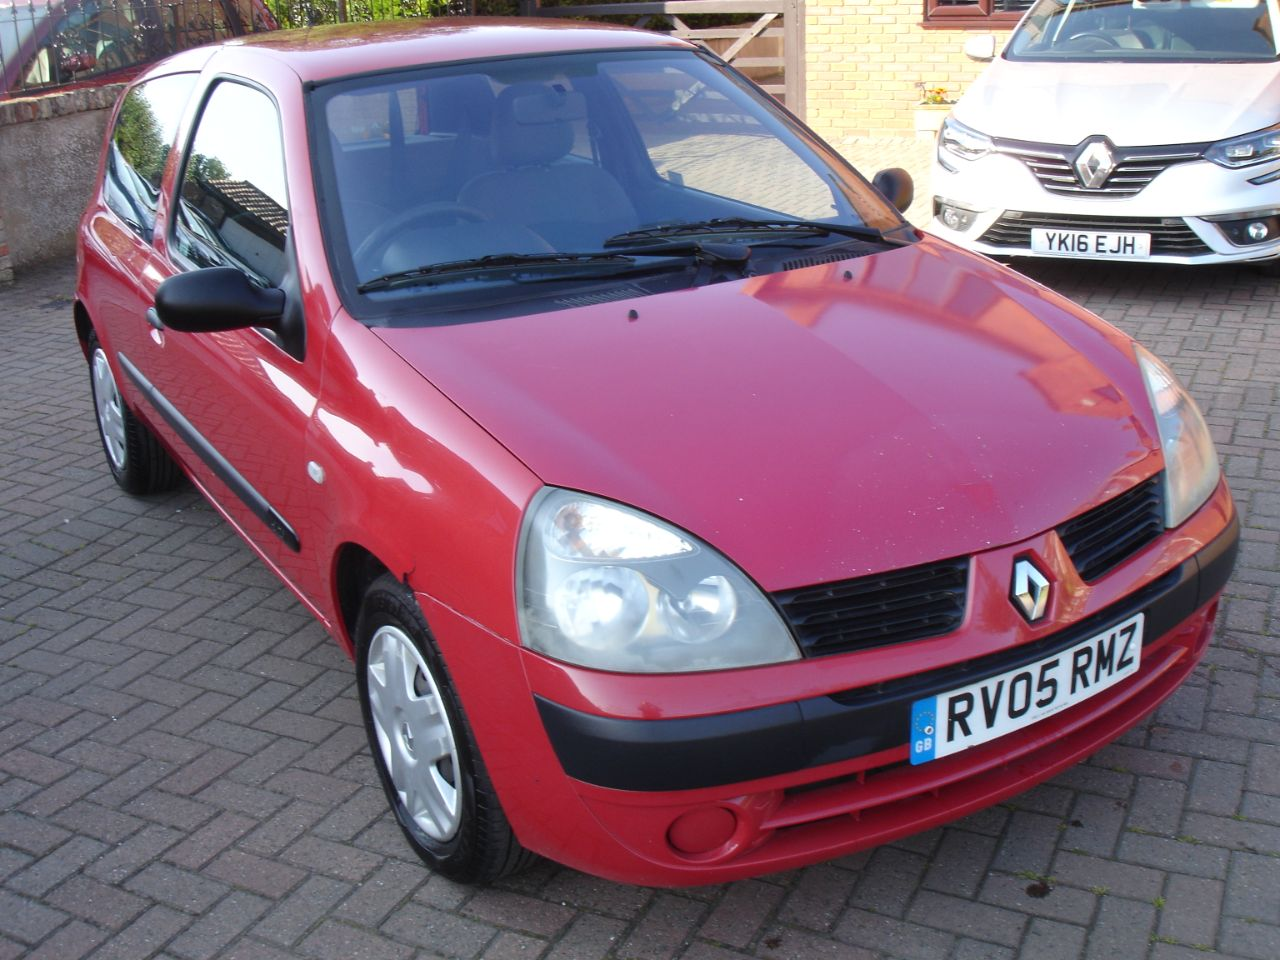 Renault Clio 1.5 dCi 65 Authentique 3dr Hatchback Diesel Many Shades Of Red at Level Pitch Selby